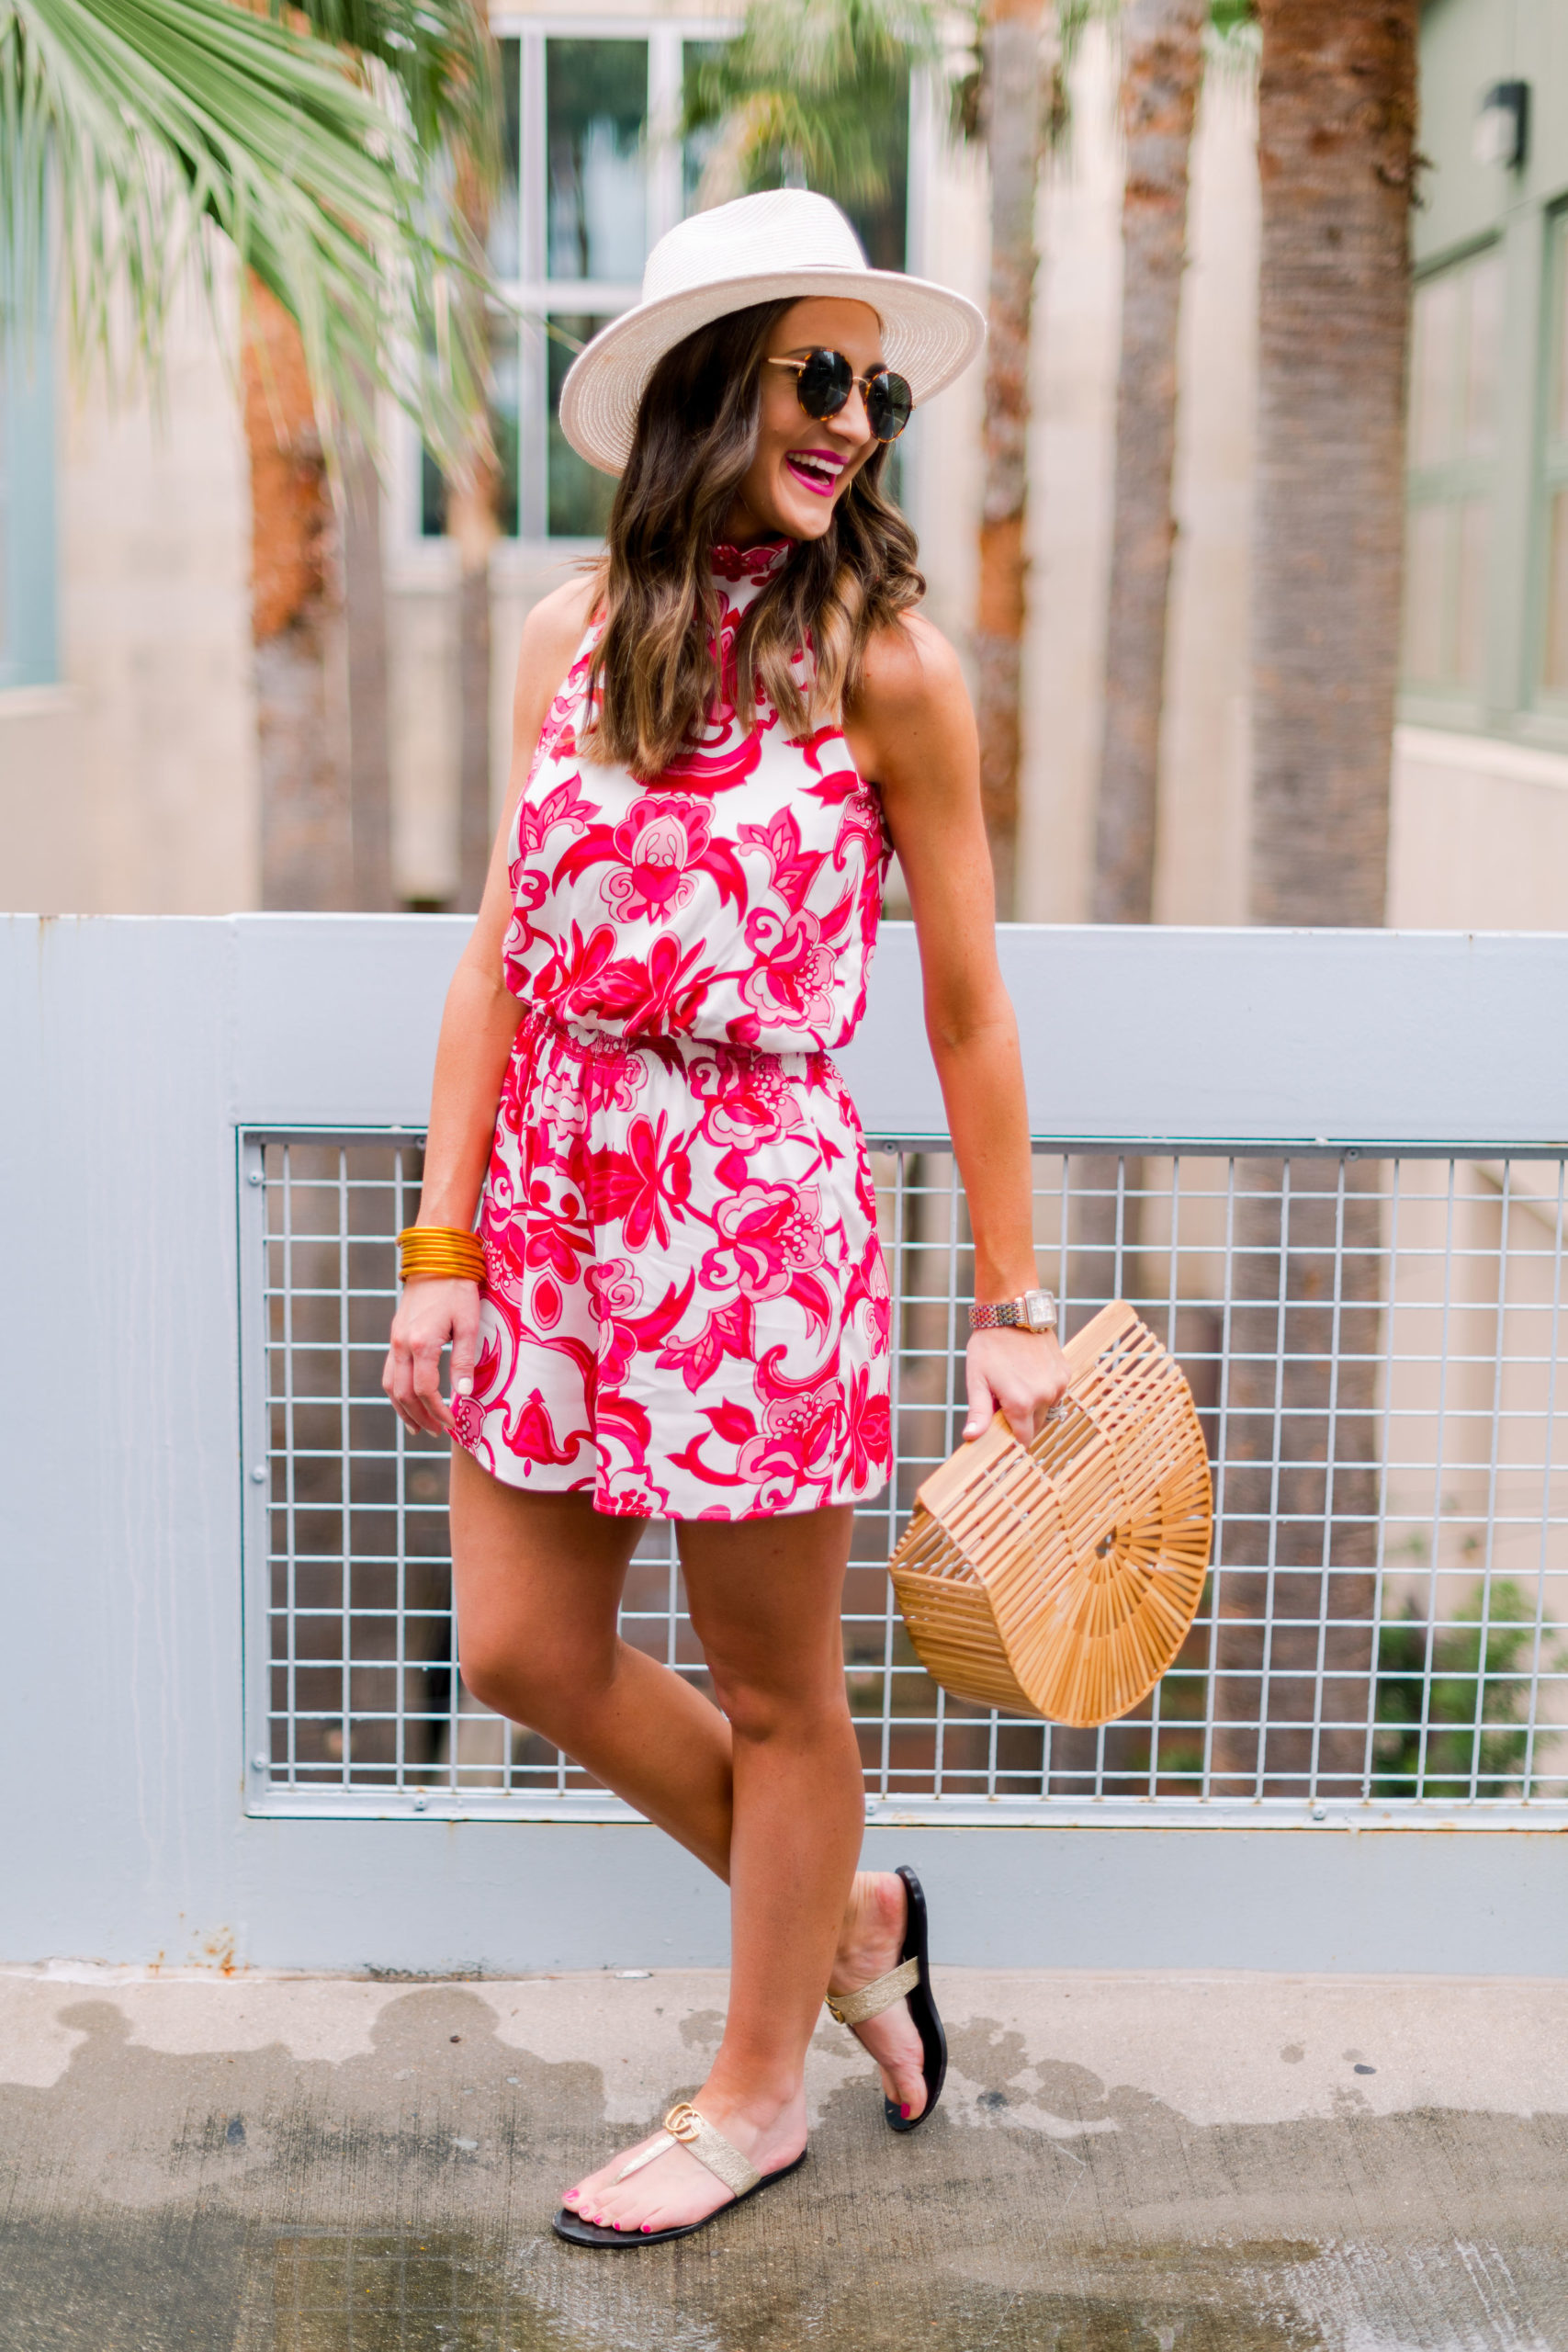 colorful romper styled casually, gibson, nordstrom, hi sugarplum, mallory fitzsimmons, resortwear, gucci sandals, panama hat, spring outfit